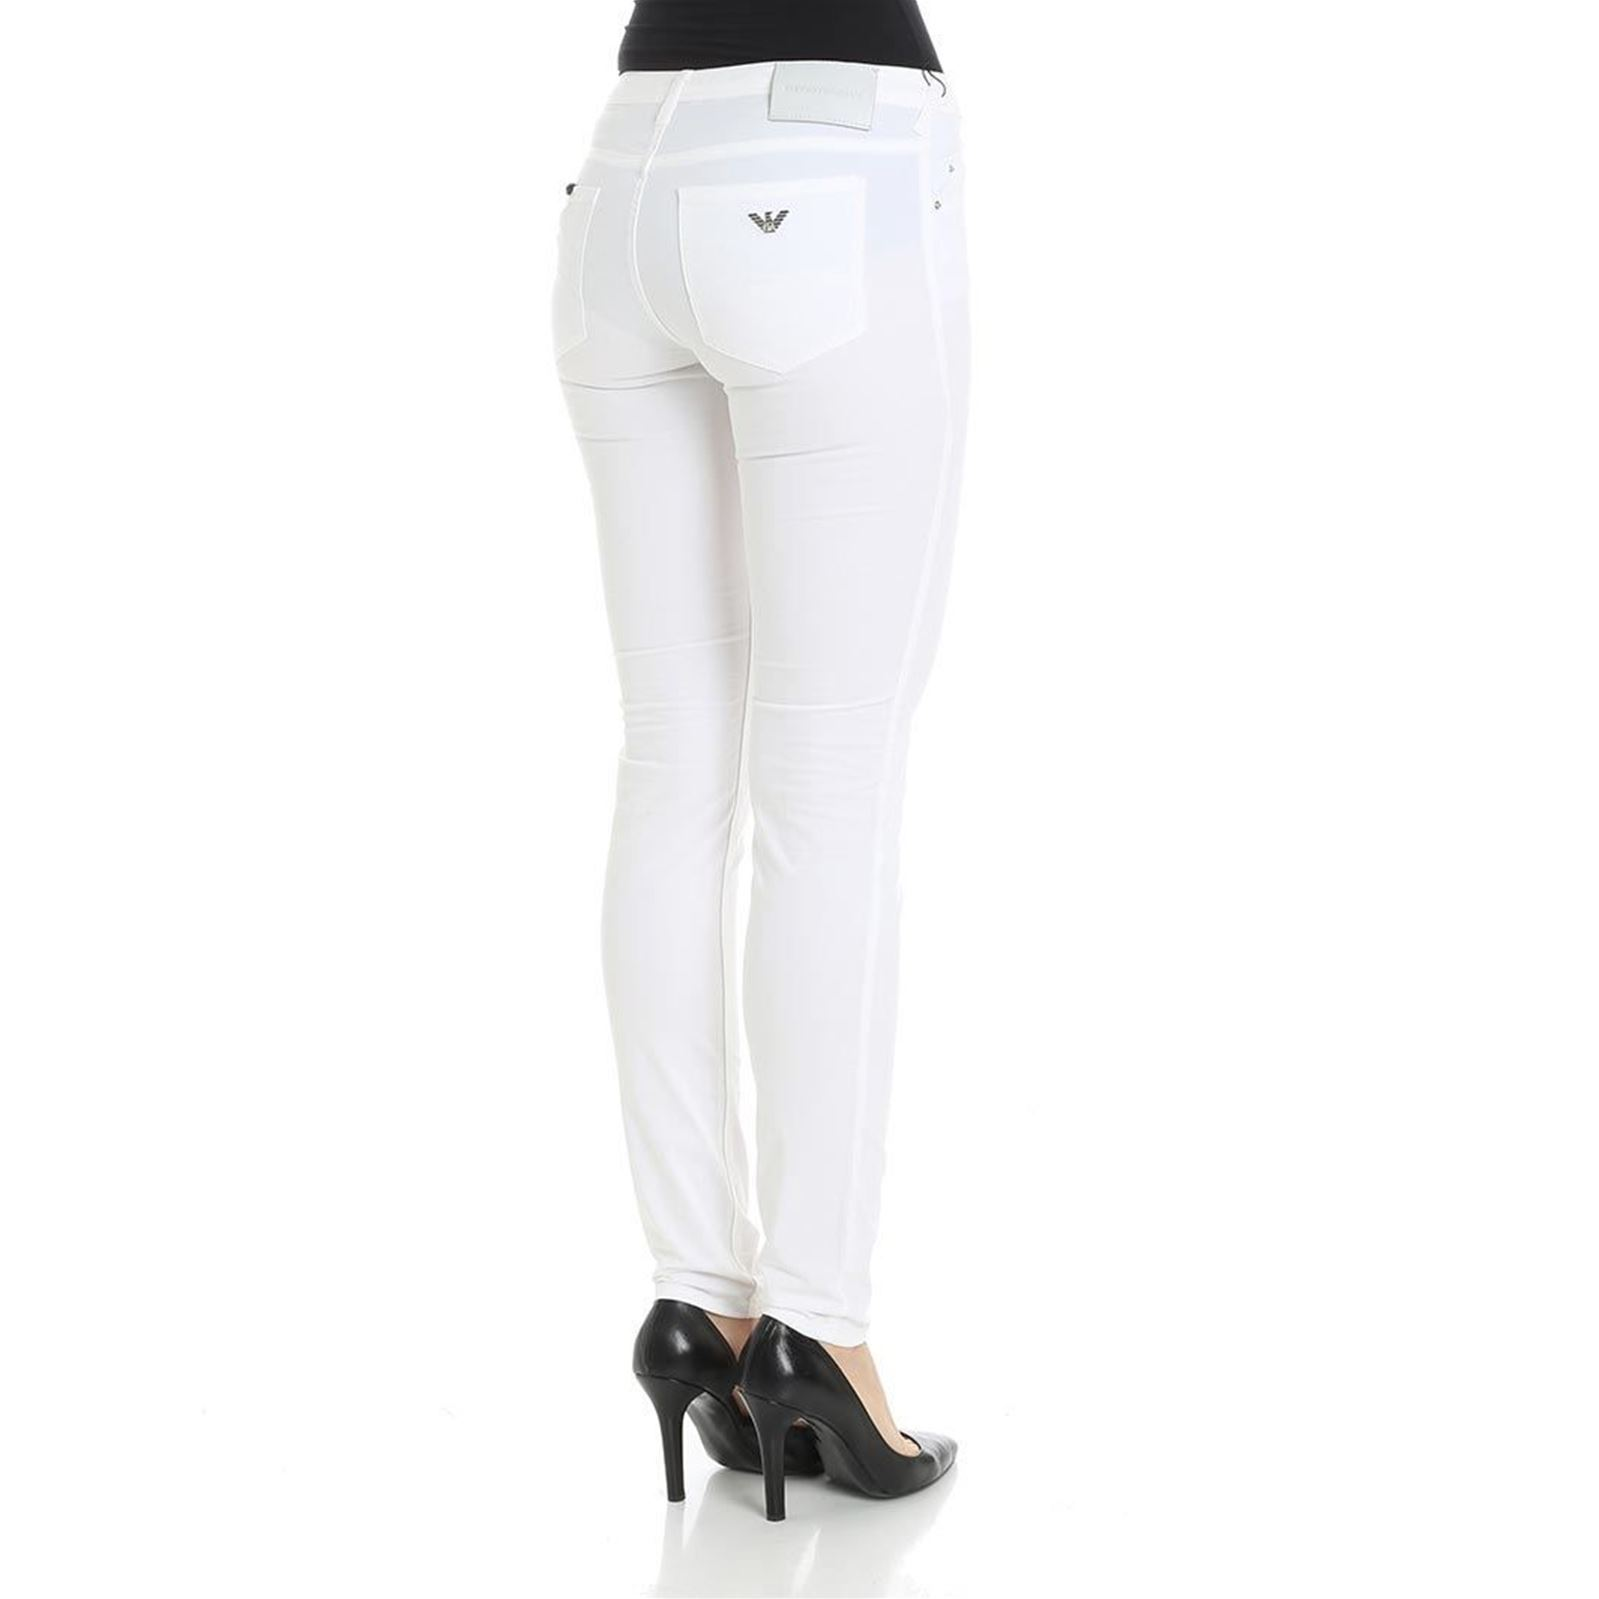 wholesale price los angeles a few days away Pantalon - blanc